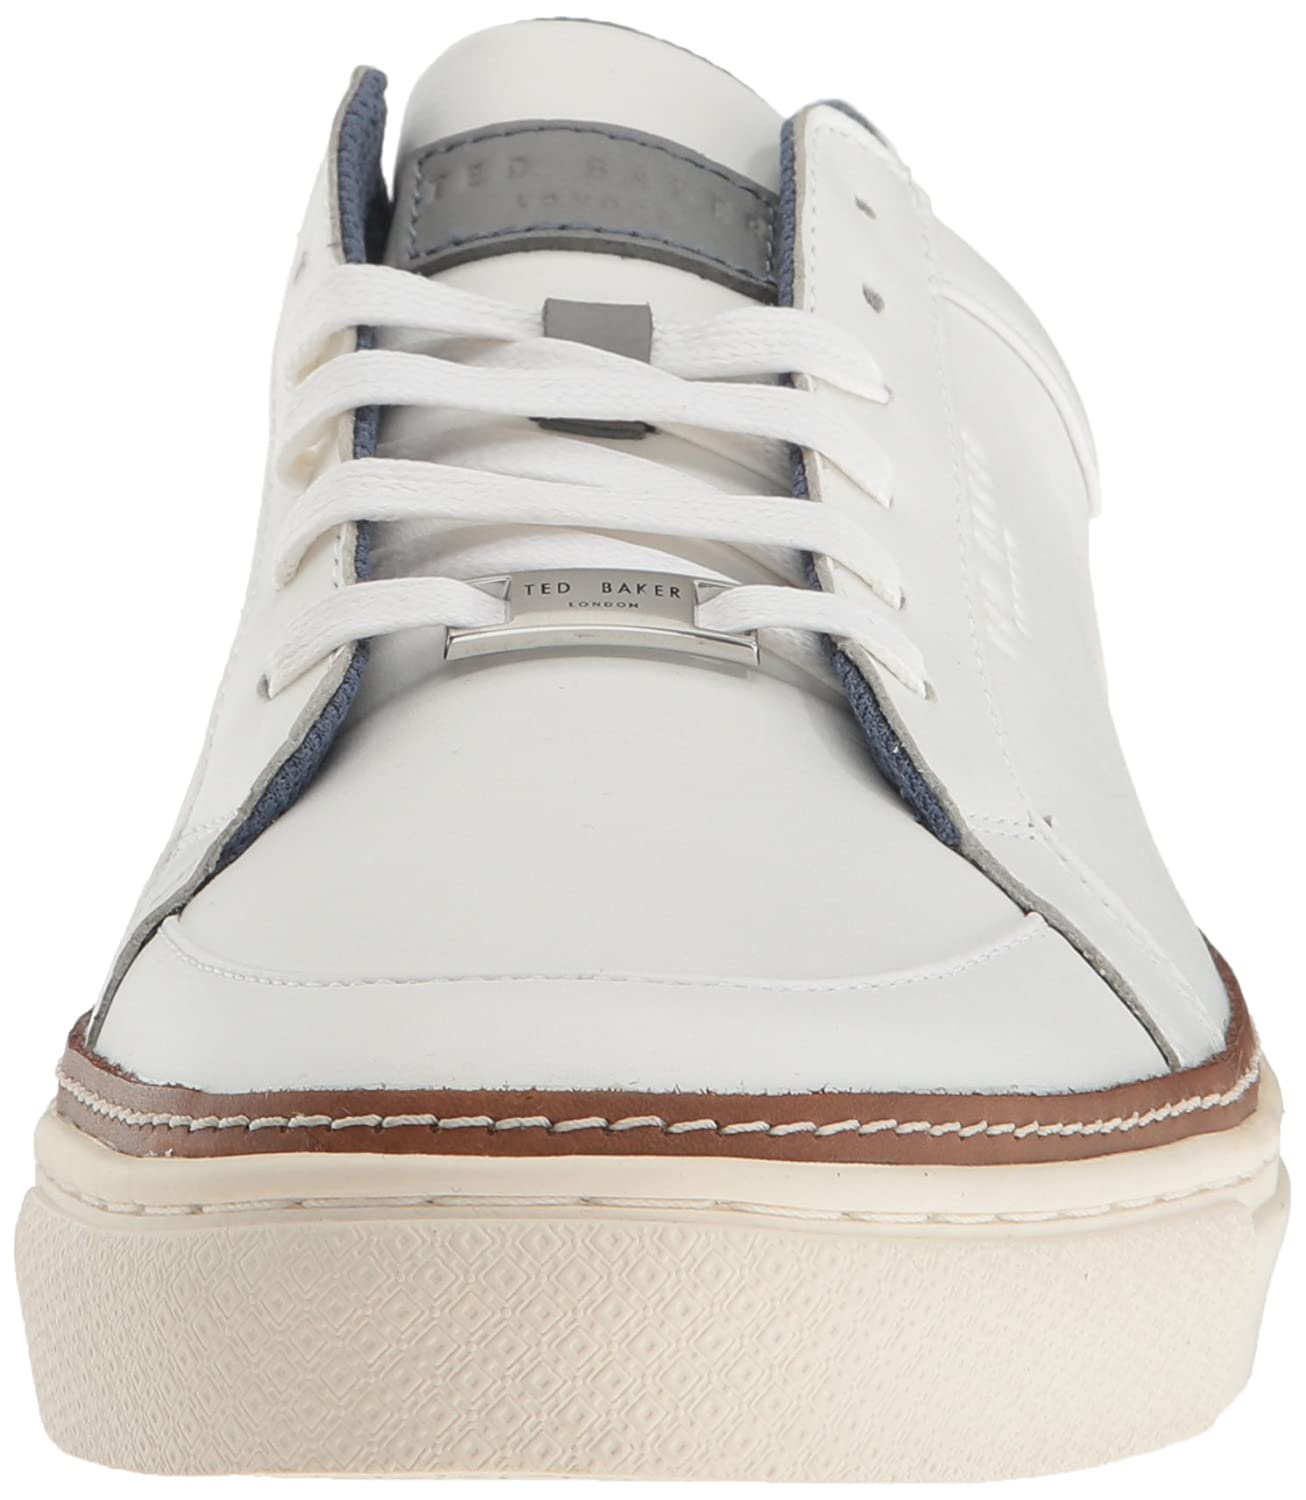 3fc1cc20f7e6 Amazon.com  Ted Baker Men s Rouu Fashion Sneaker White 8 M US  Shoes